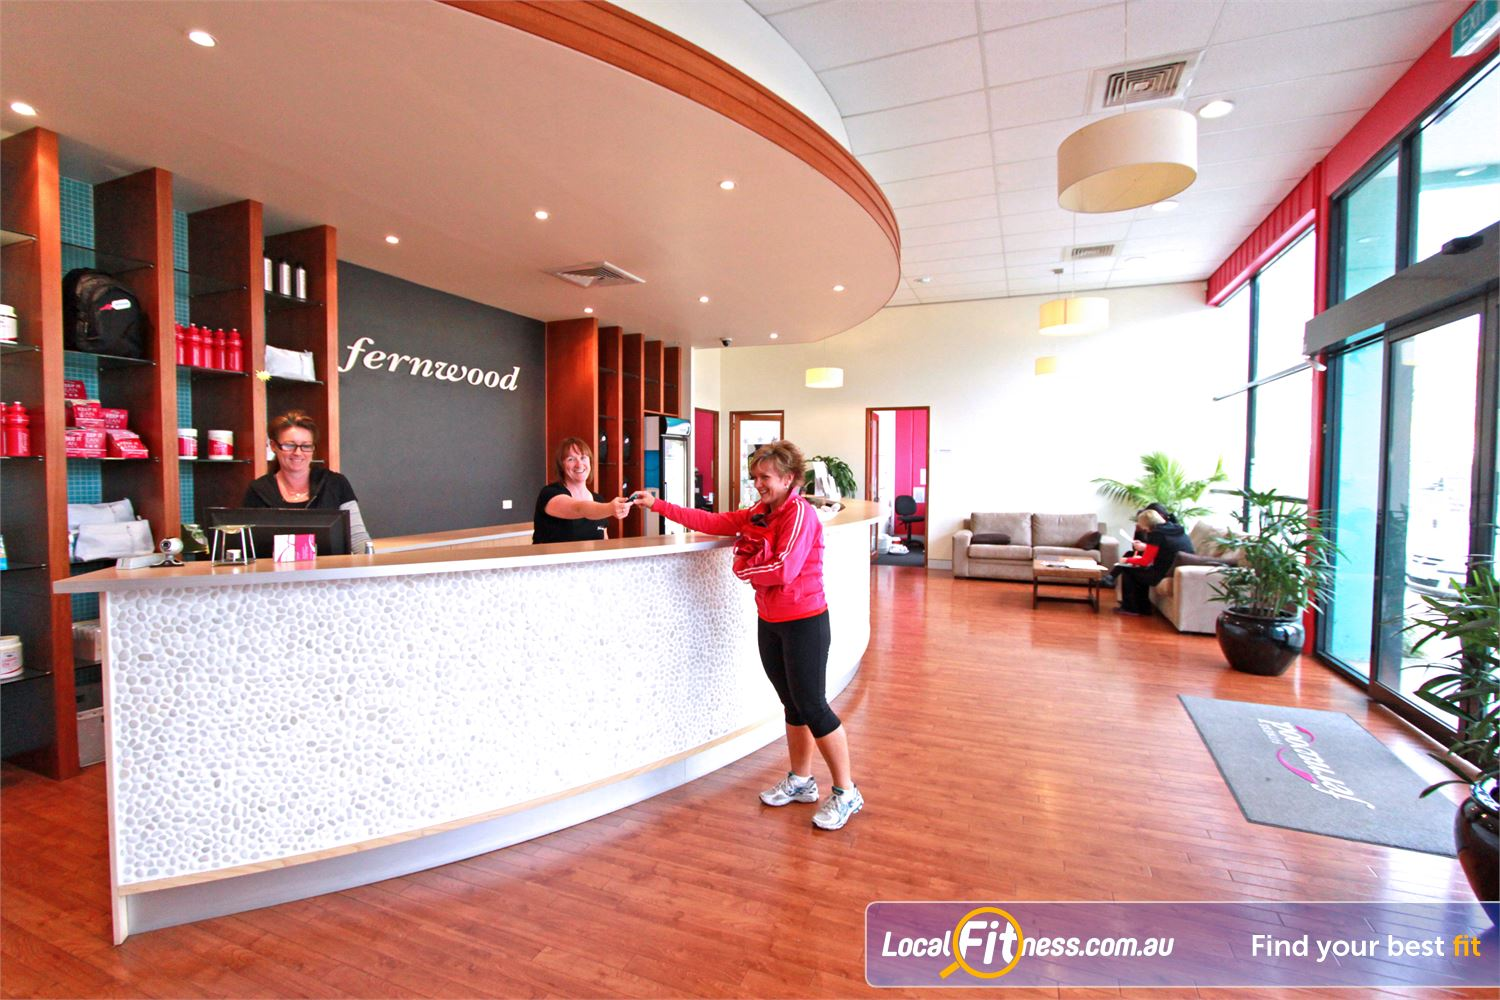 Fernwood Fitness Ferntree Gully Have peace of mind, our team are experts in exercise for women.